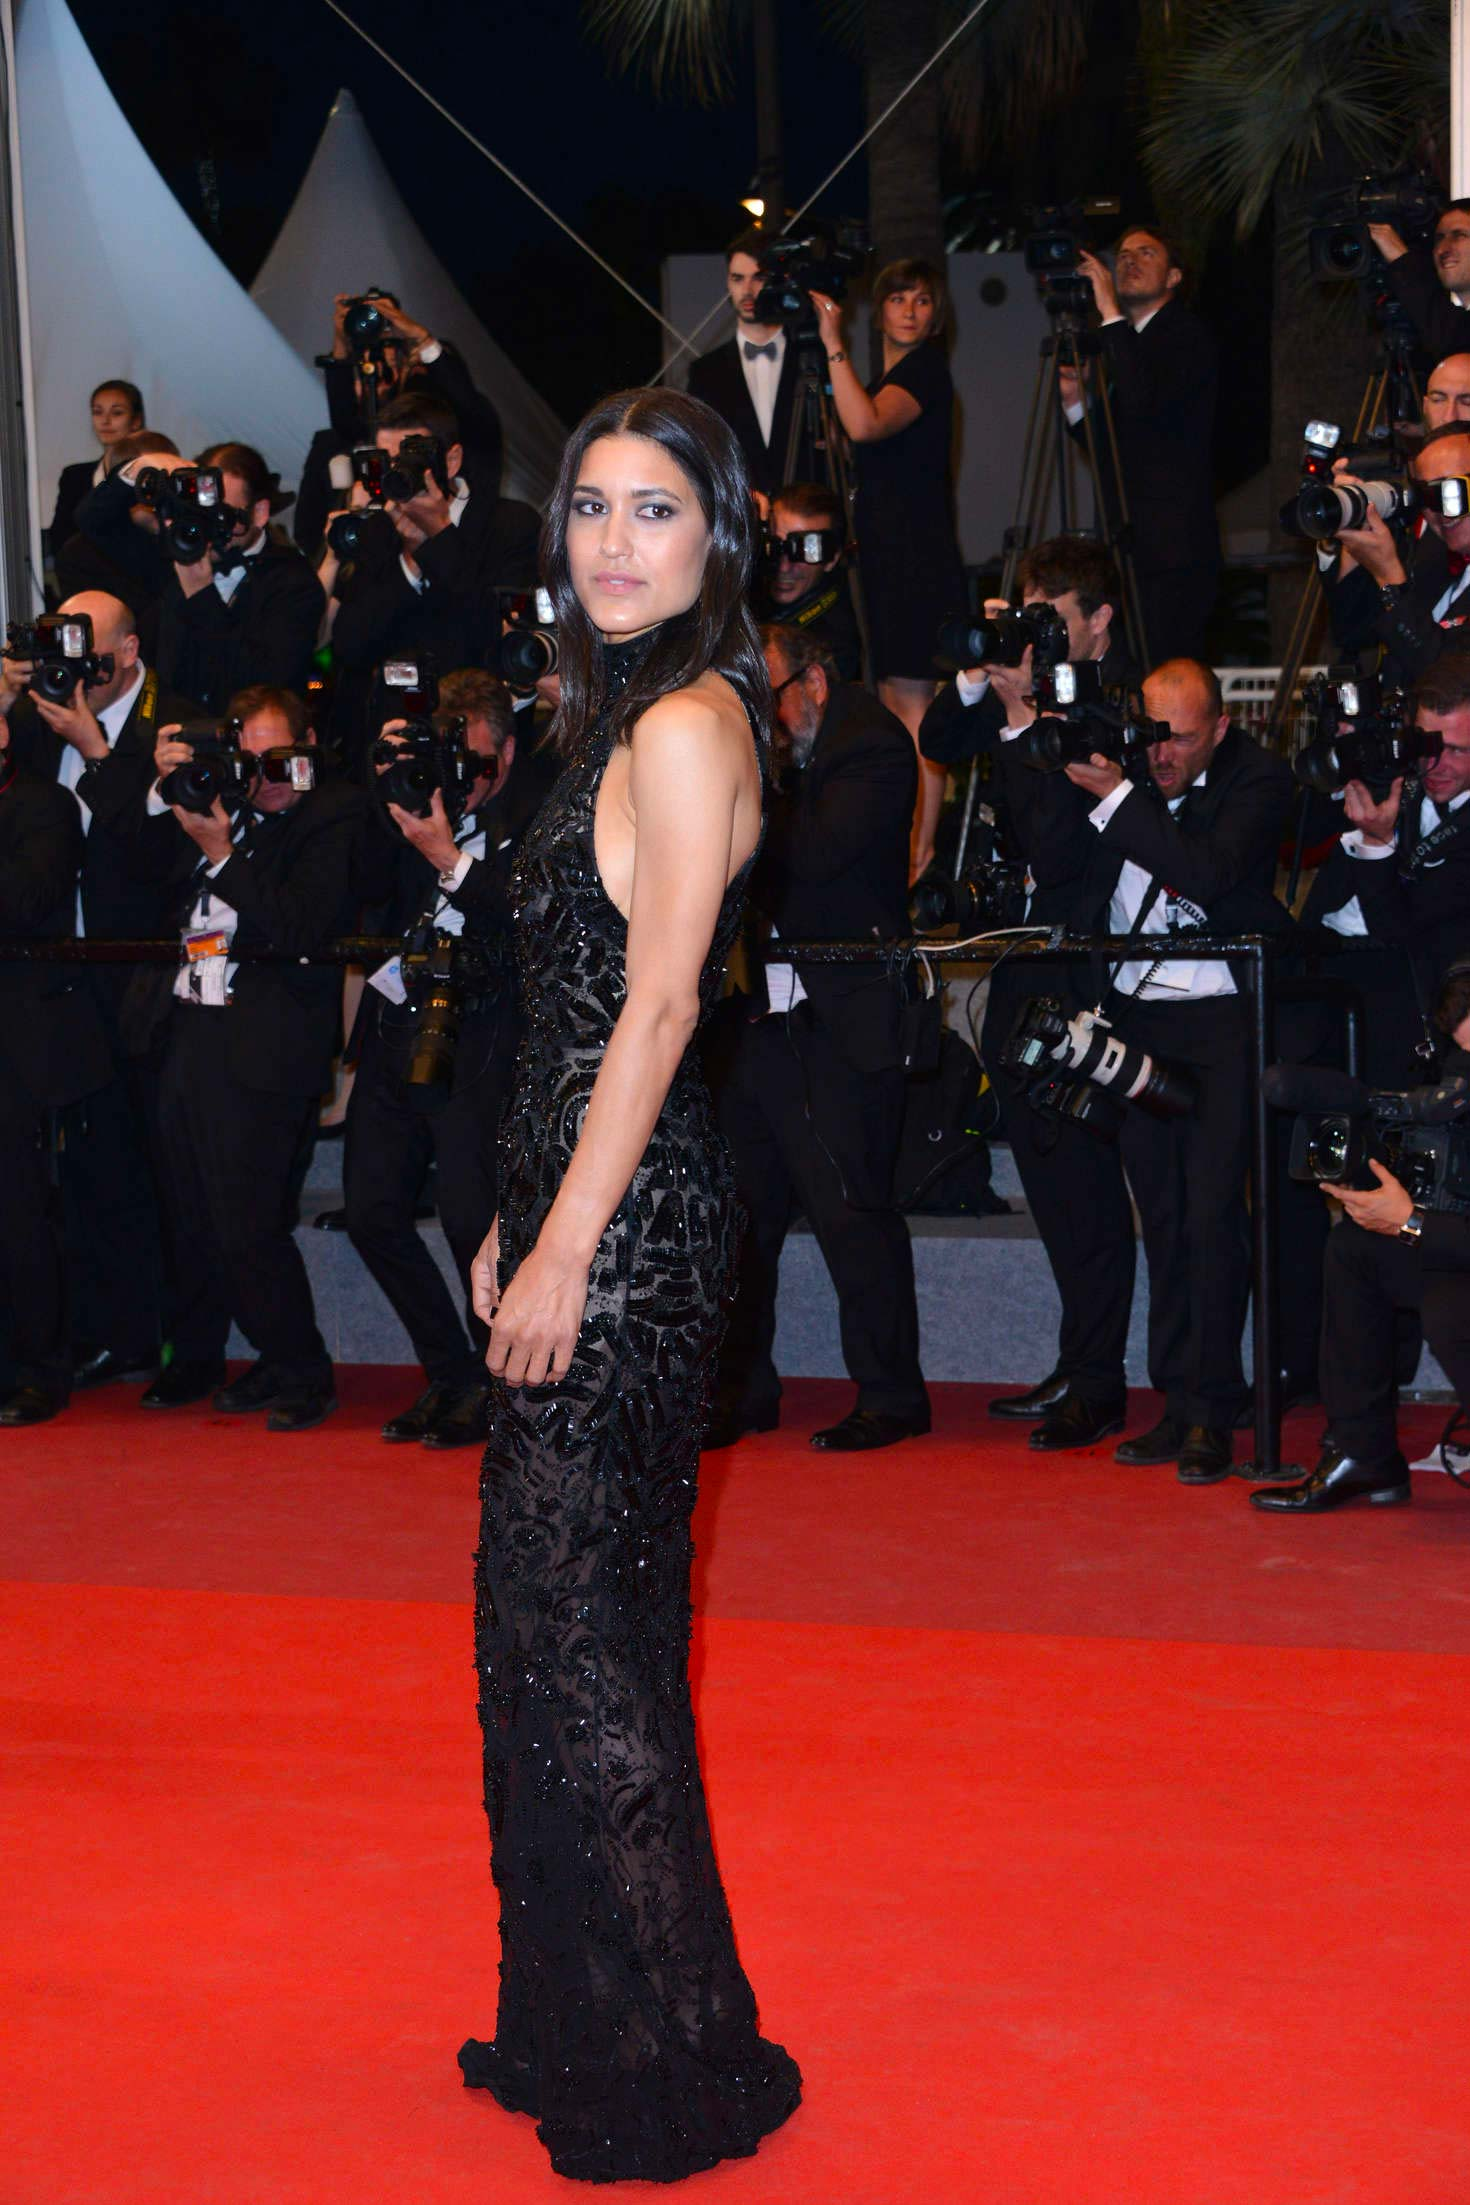 Cannes 2017 - Day 4 - The Square première - Actress Julia Jones